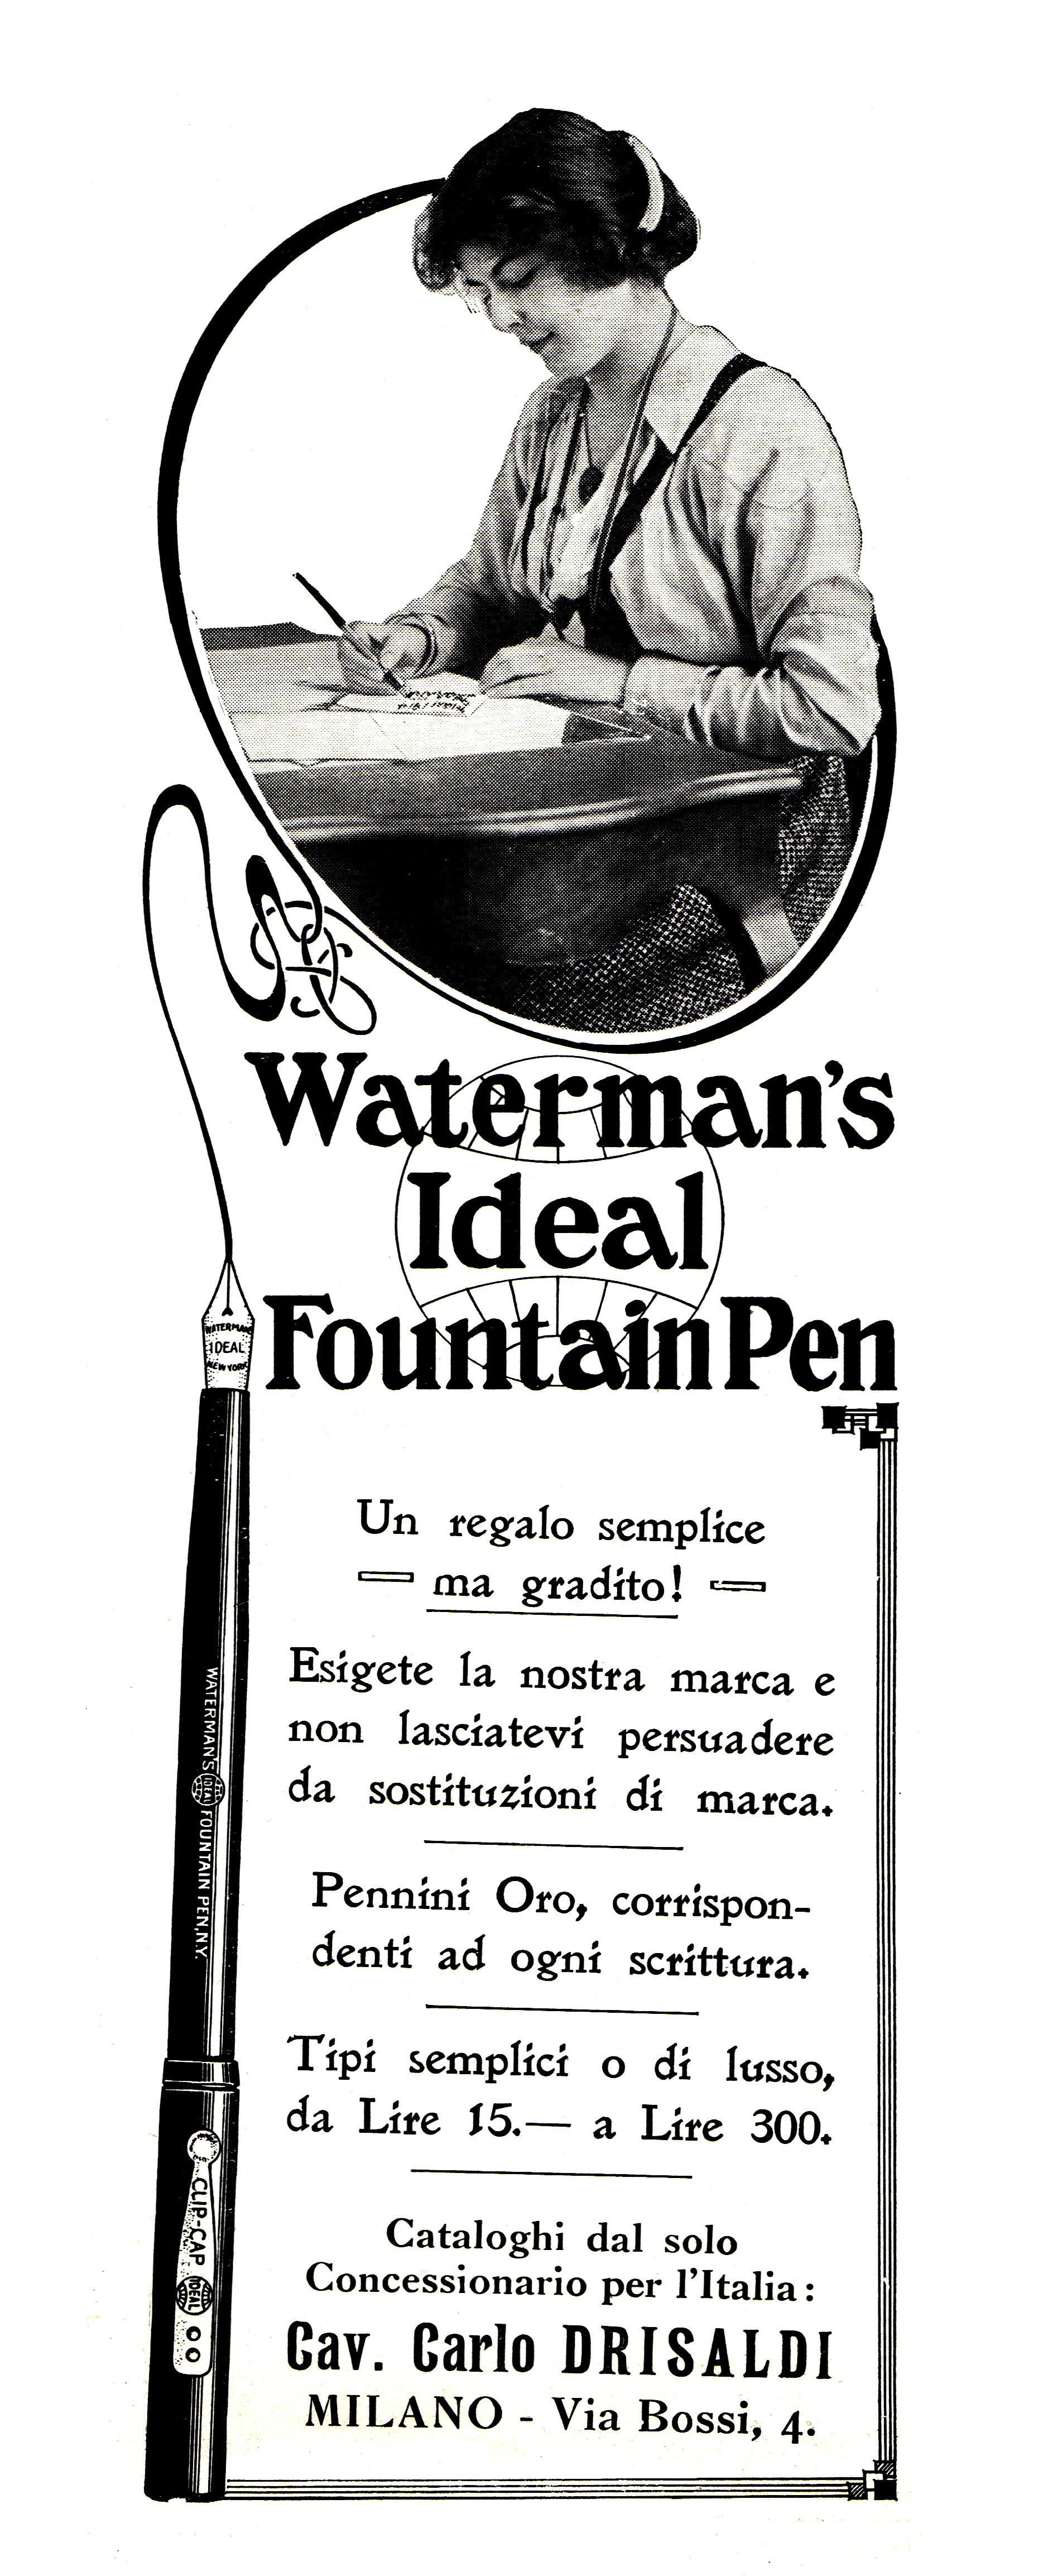 WATERMAN - Eyedropper 1x - 1915-05-23. L'Illustrazione Italiana, Anno XLII N.21, pag.428.jpg